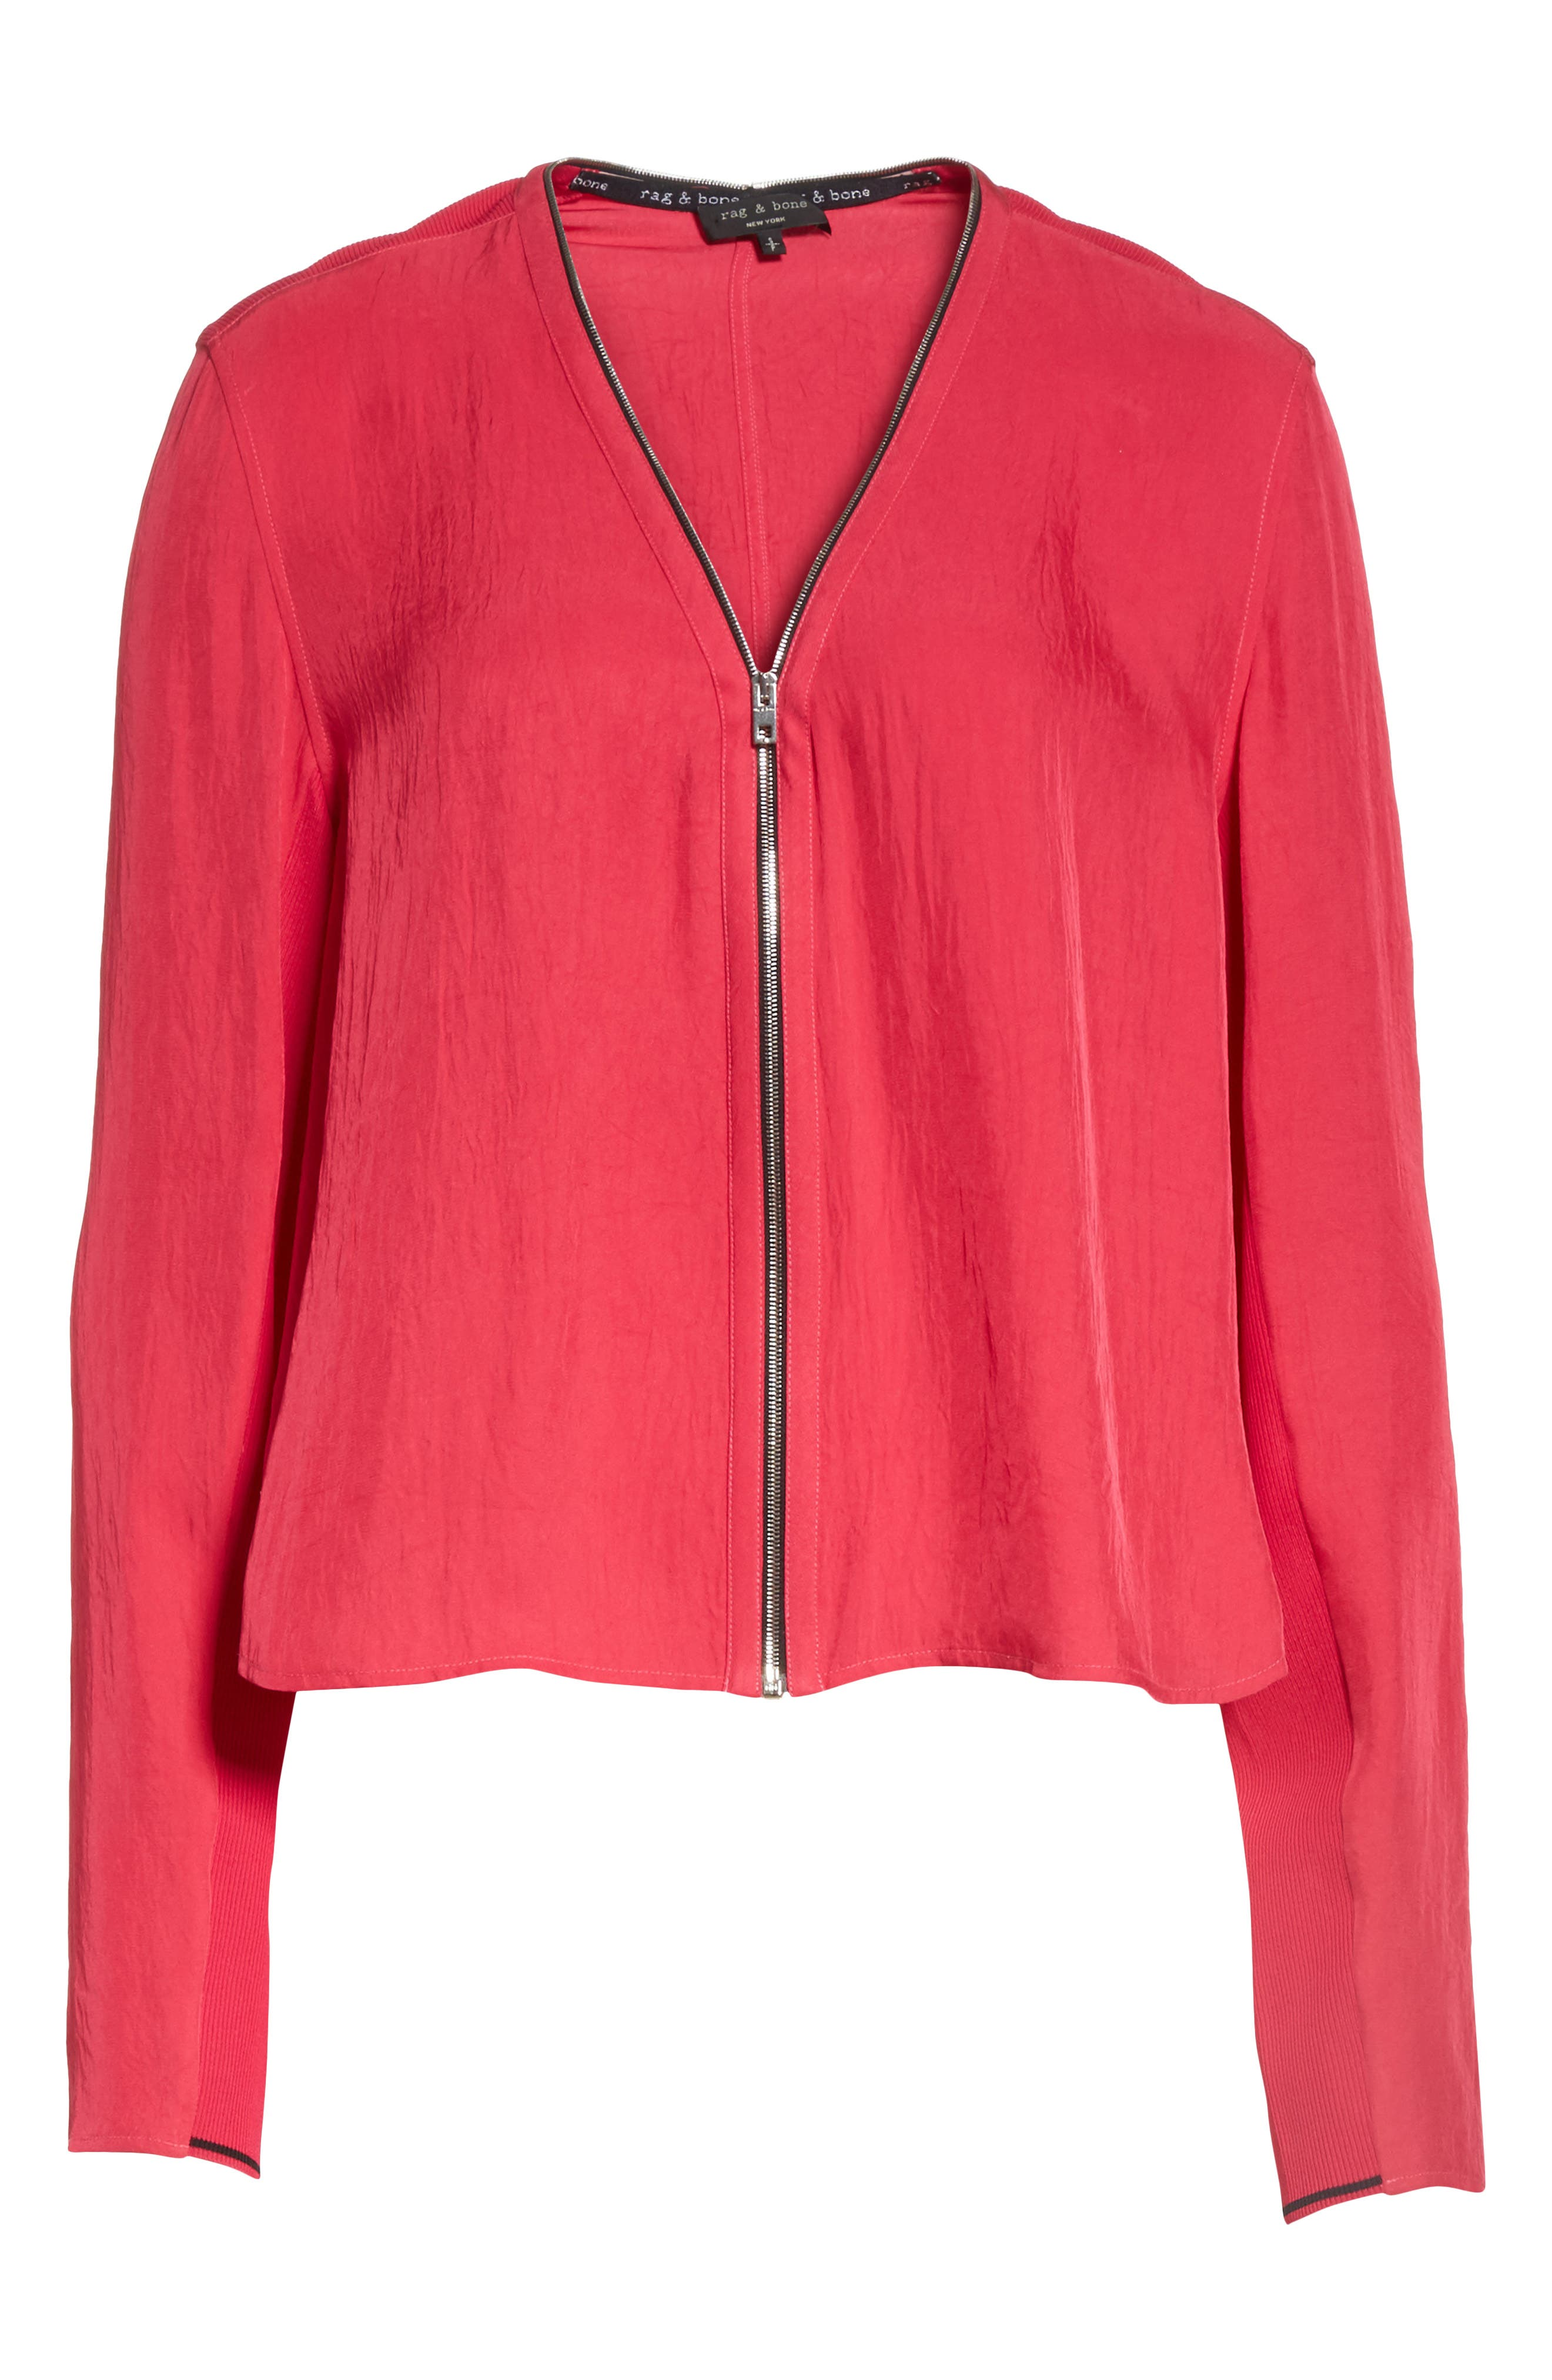 Vanessa Zip Front Blouse,                             Alternate thumbnail 6, color,                             Bright Rose